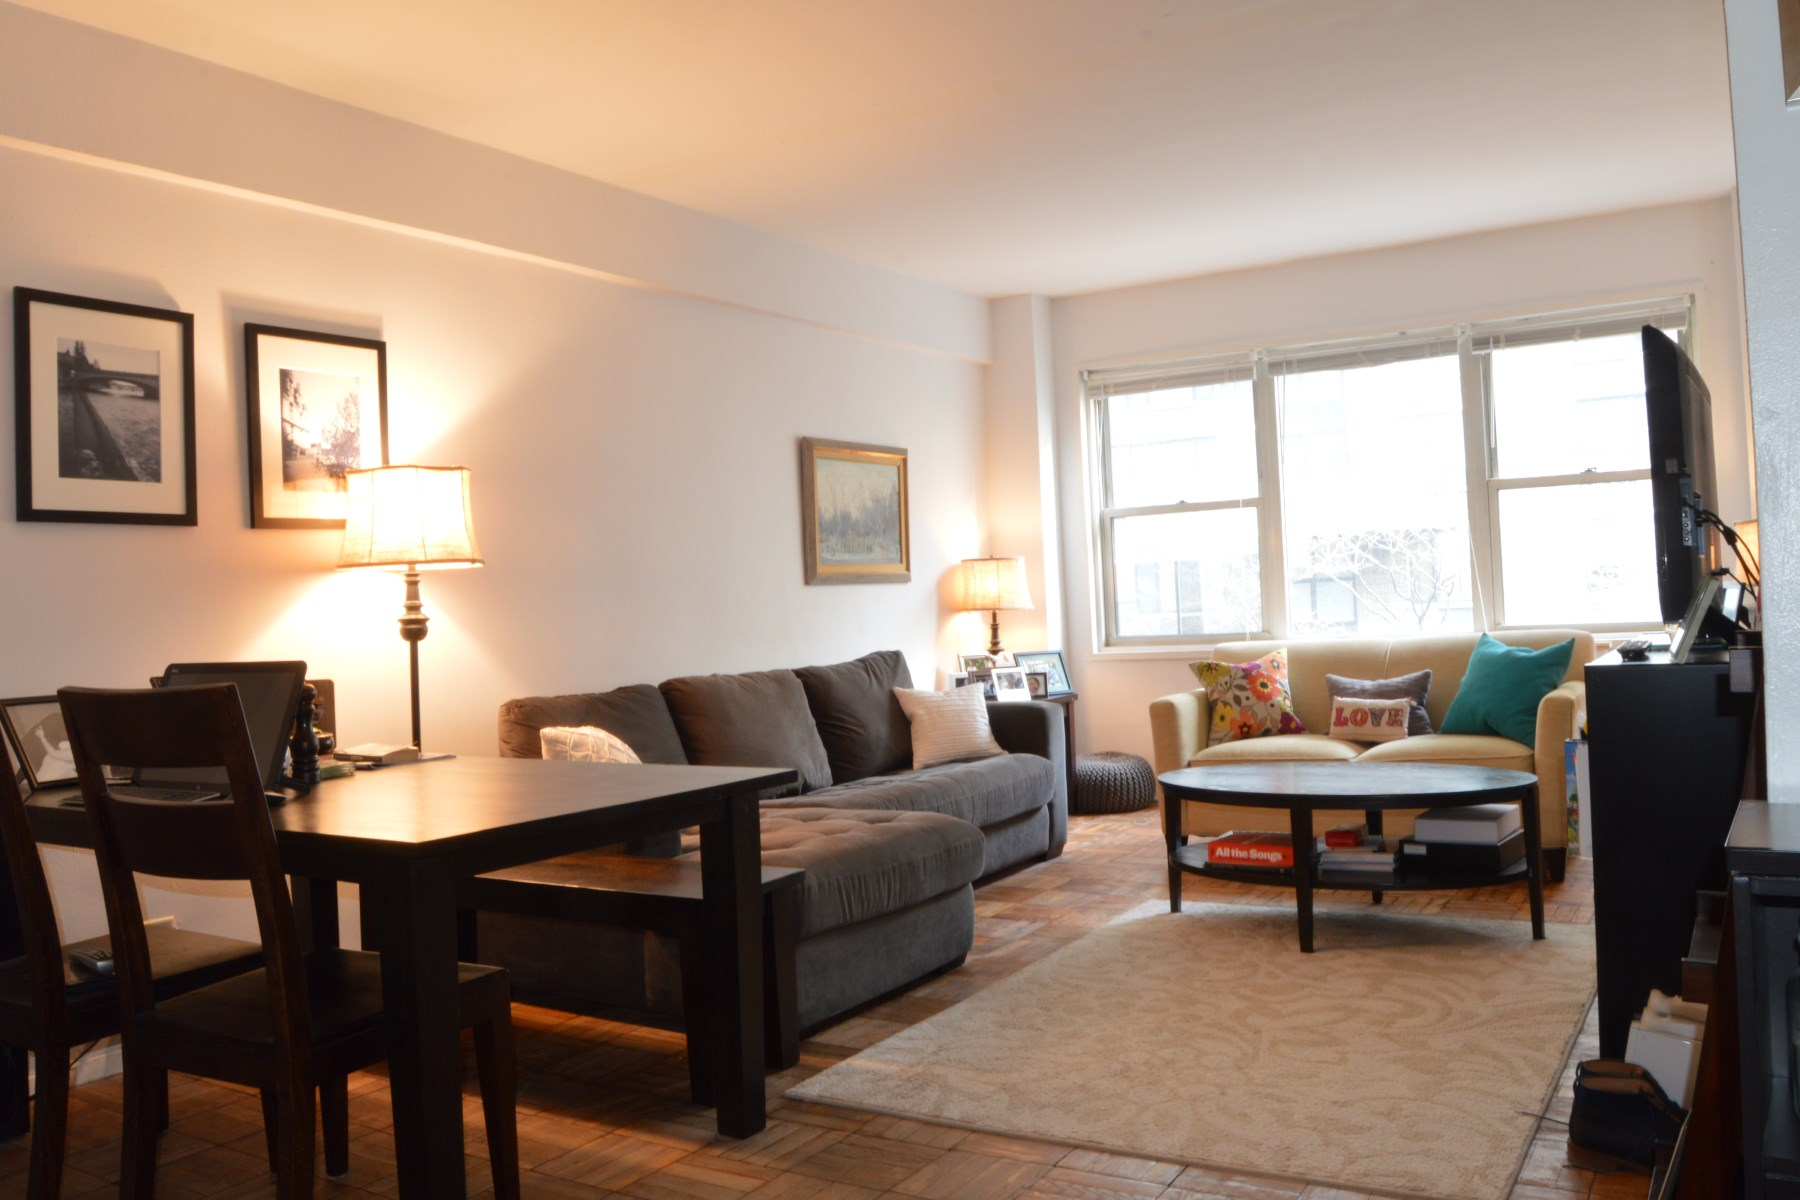 Property For Sale at 310 East 49th Street Apt 5D